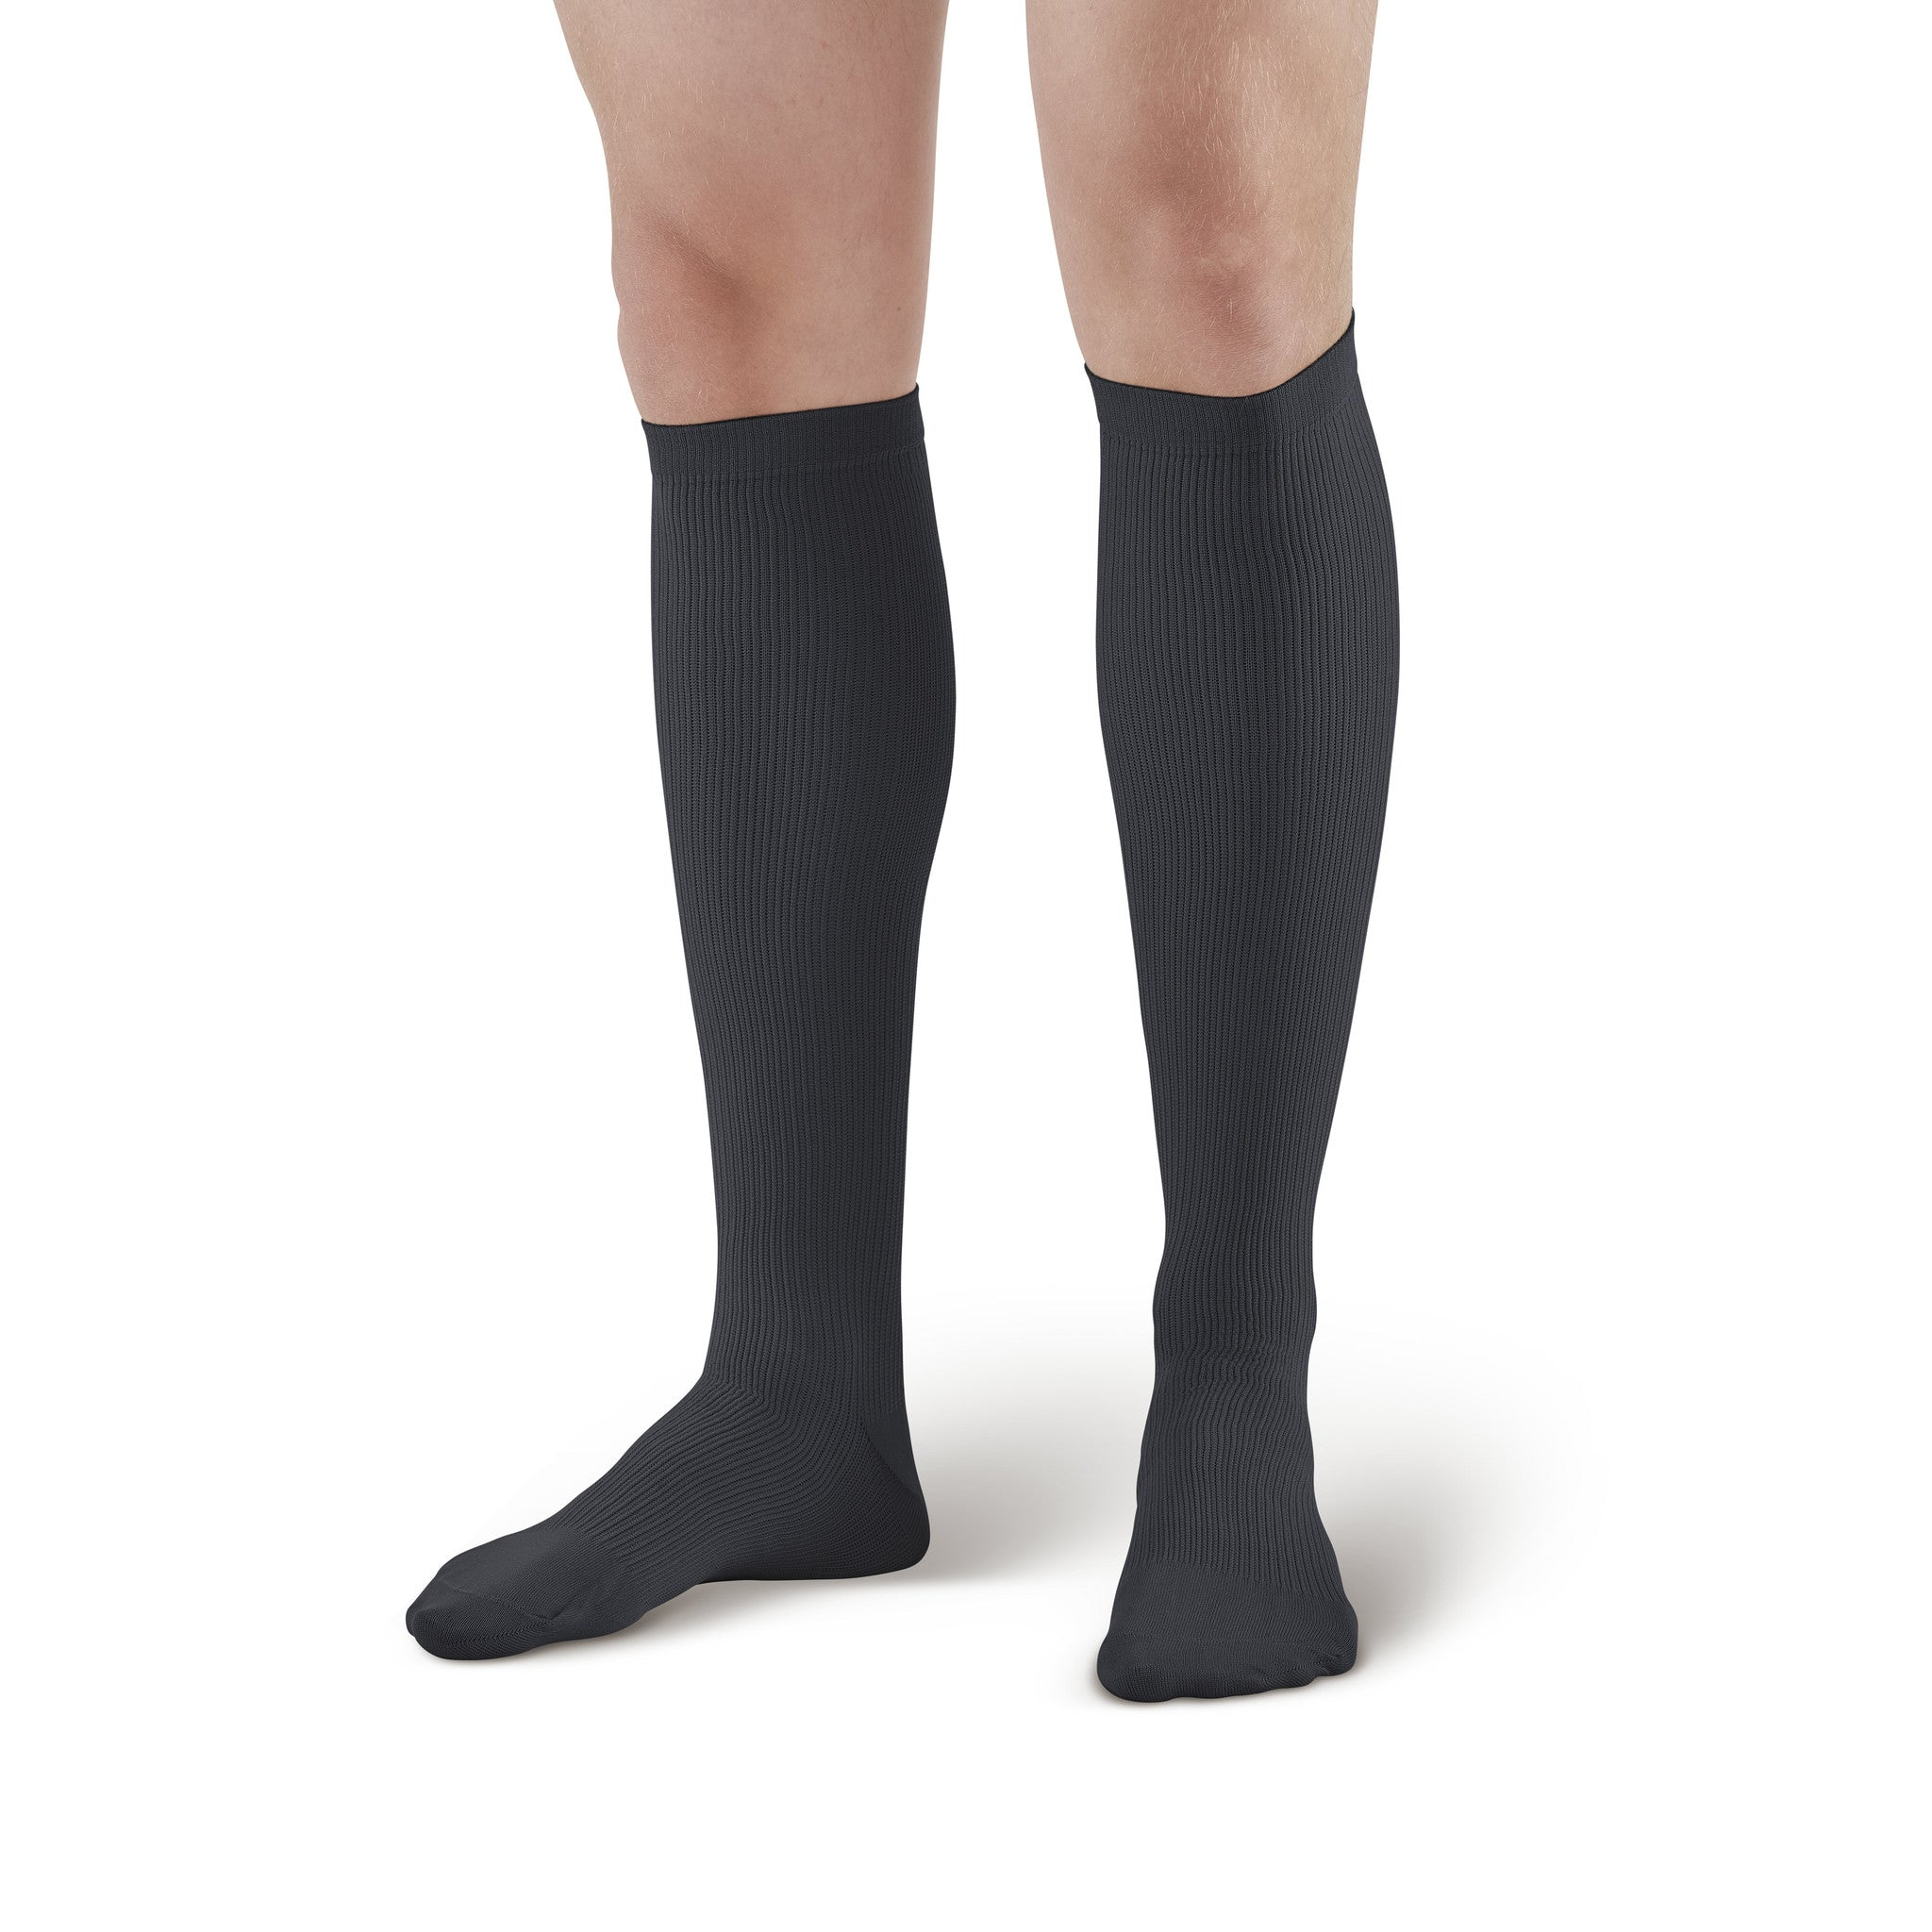 f719683f9839 Ames Walker Knee High Compression Socks 20-30 mmHg | Low Price Guarantee